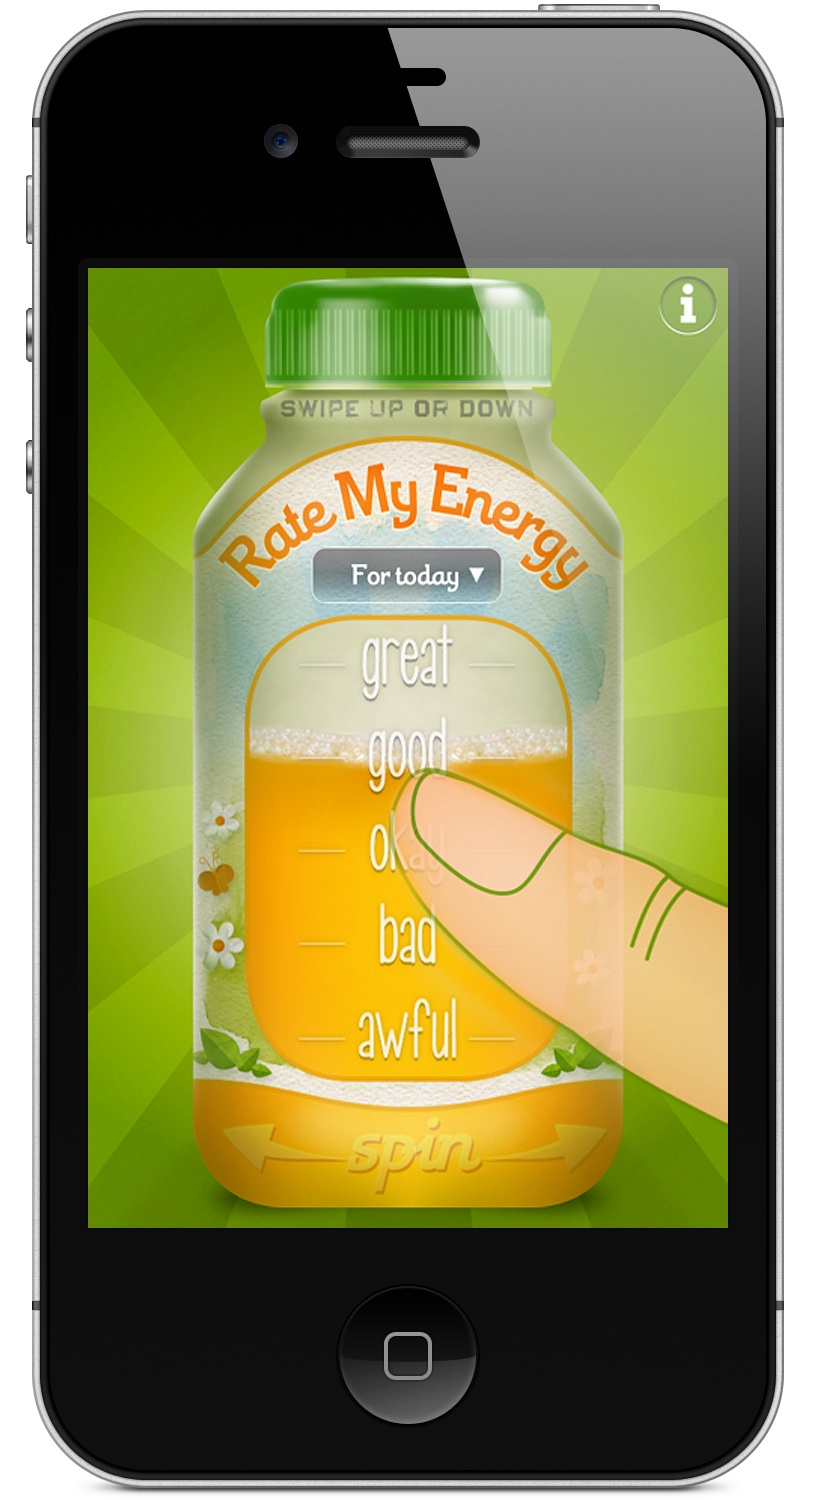 Energy Tracking iPhone App